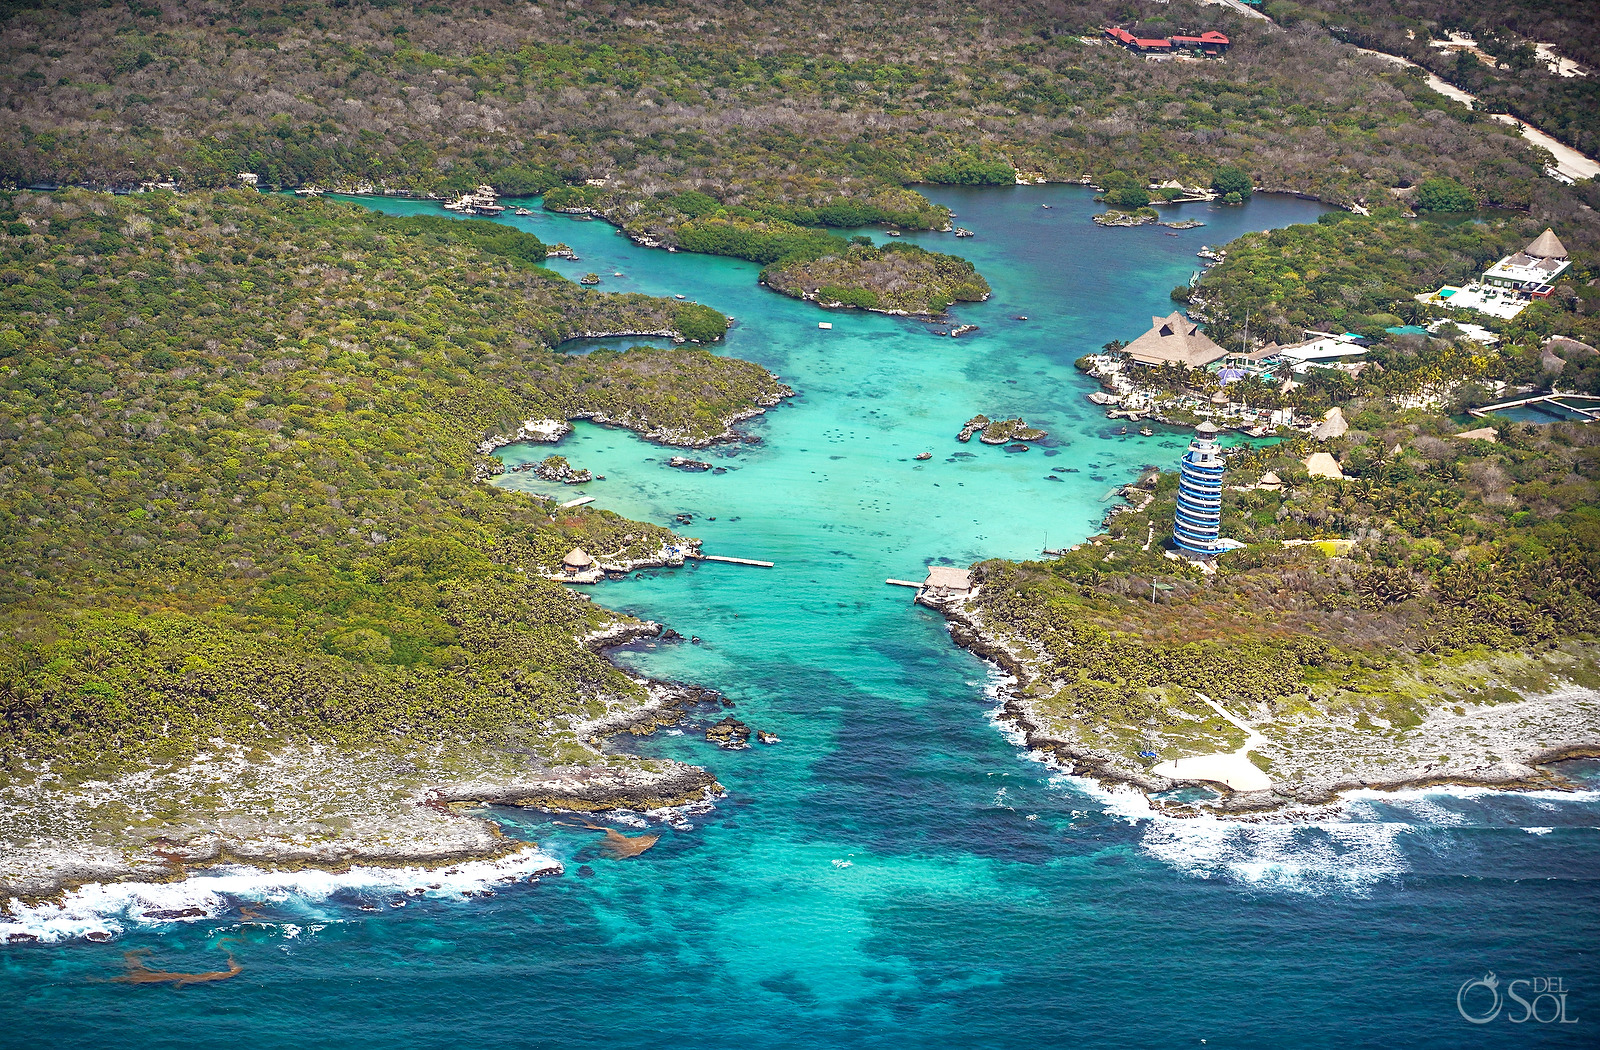 Aerial Photograph Xel Ha Park without tourists during April 2020 quarantine